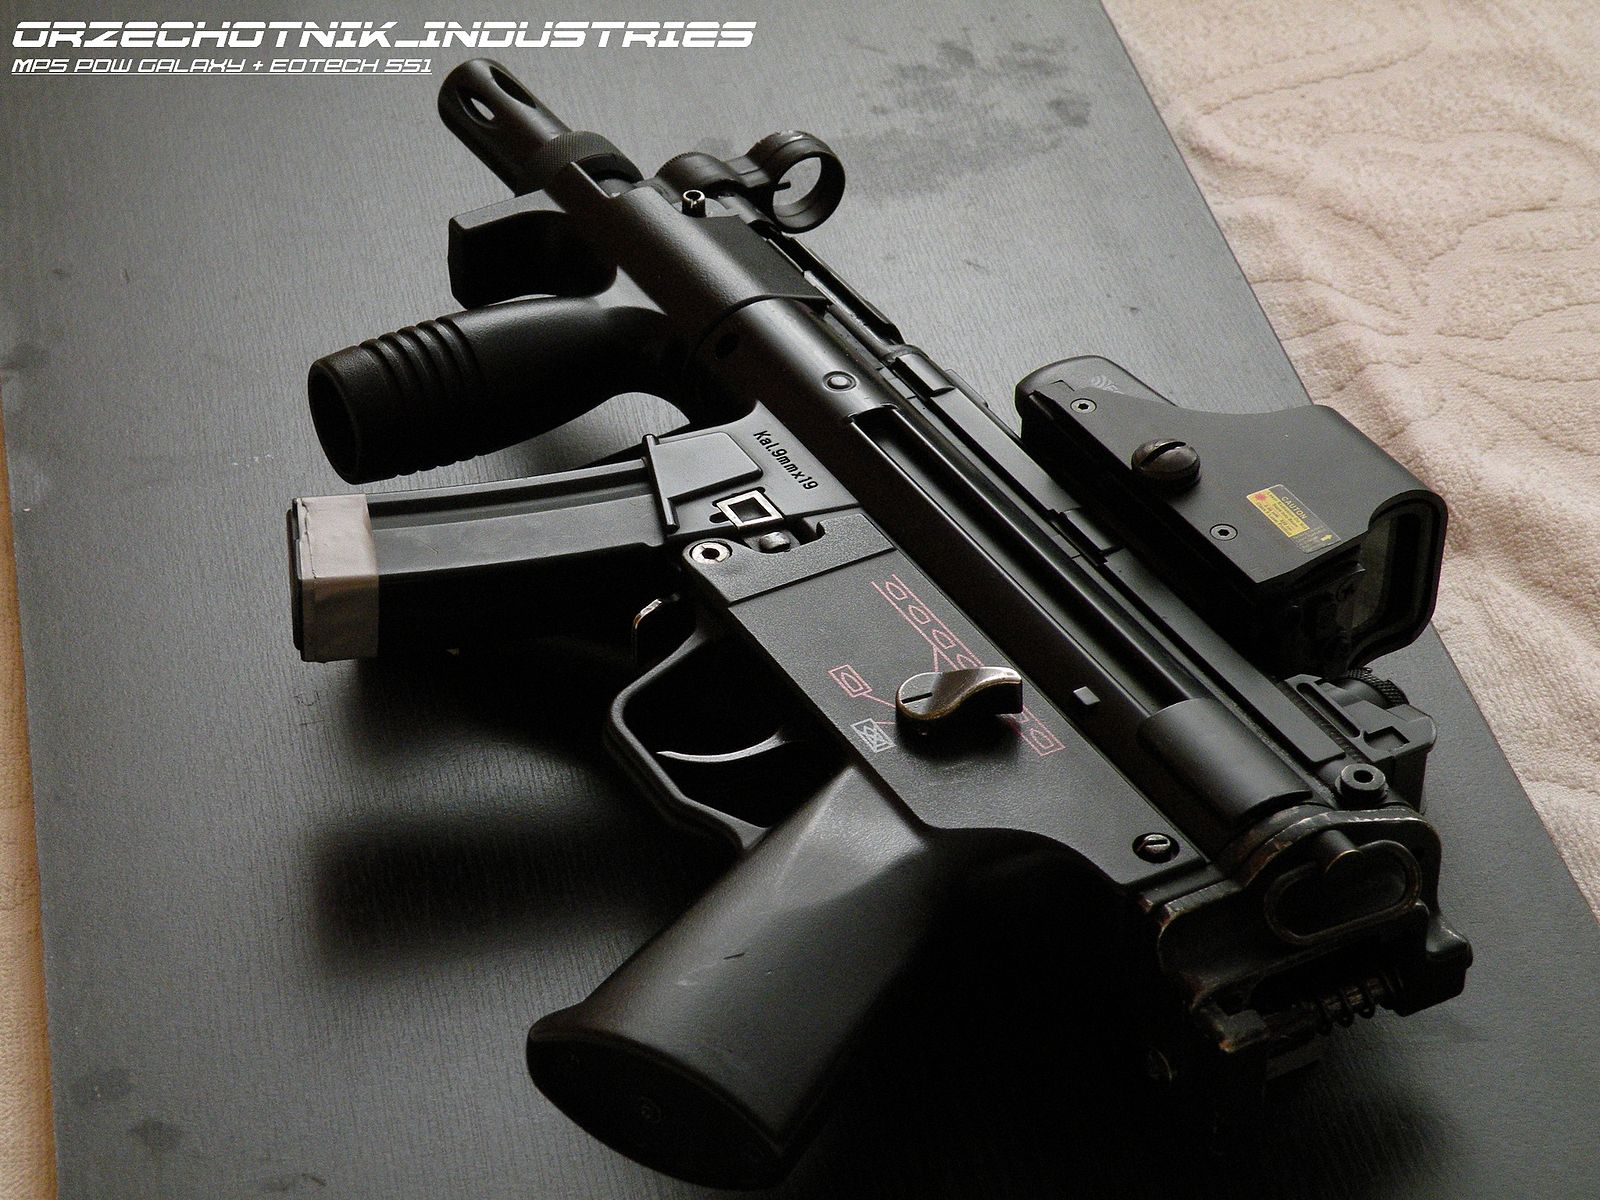 heckler and koch mp5 pdw galaxy with eotech 551